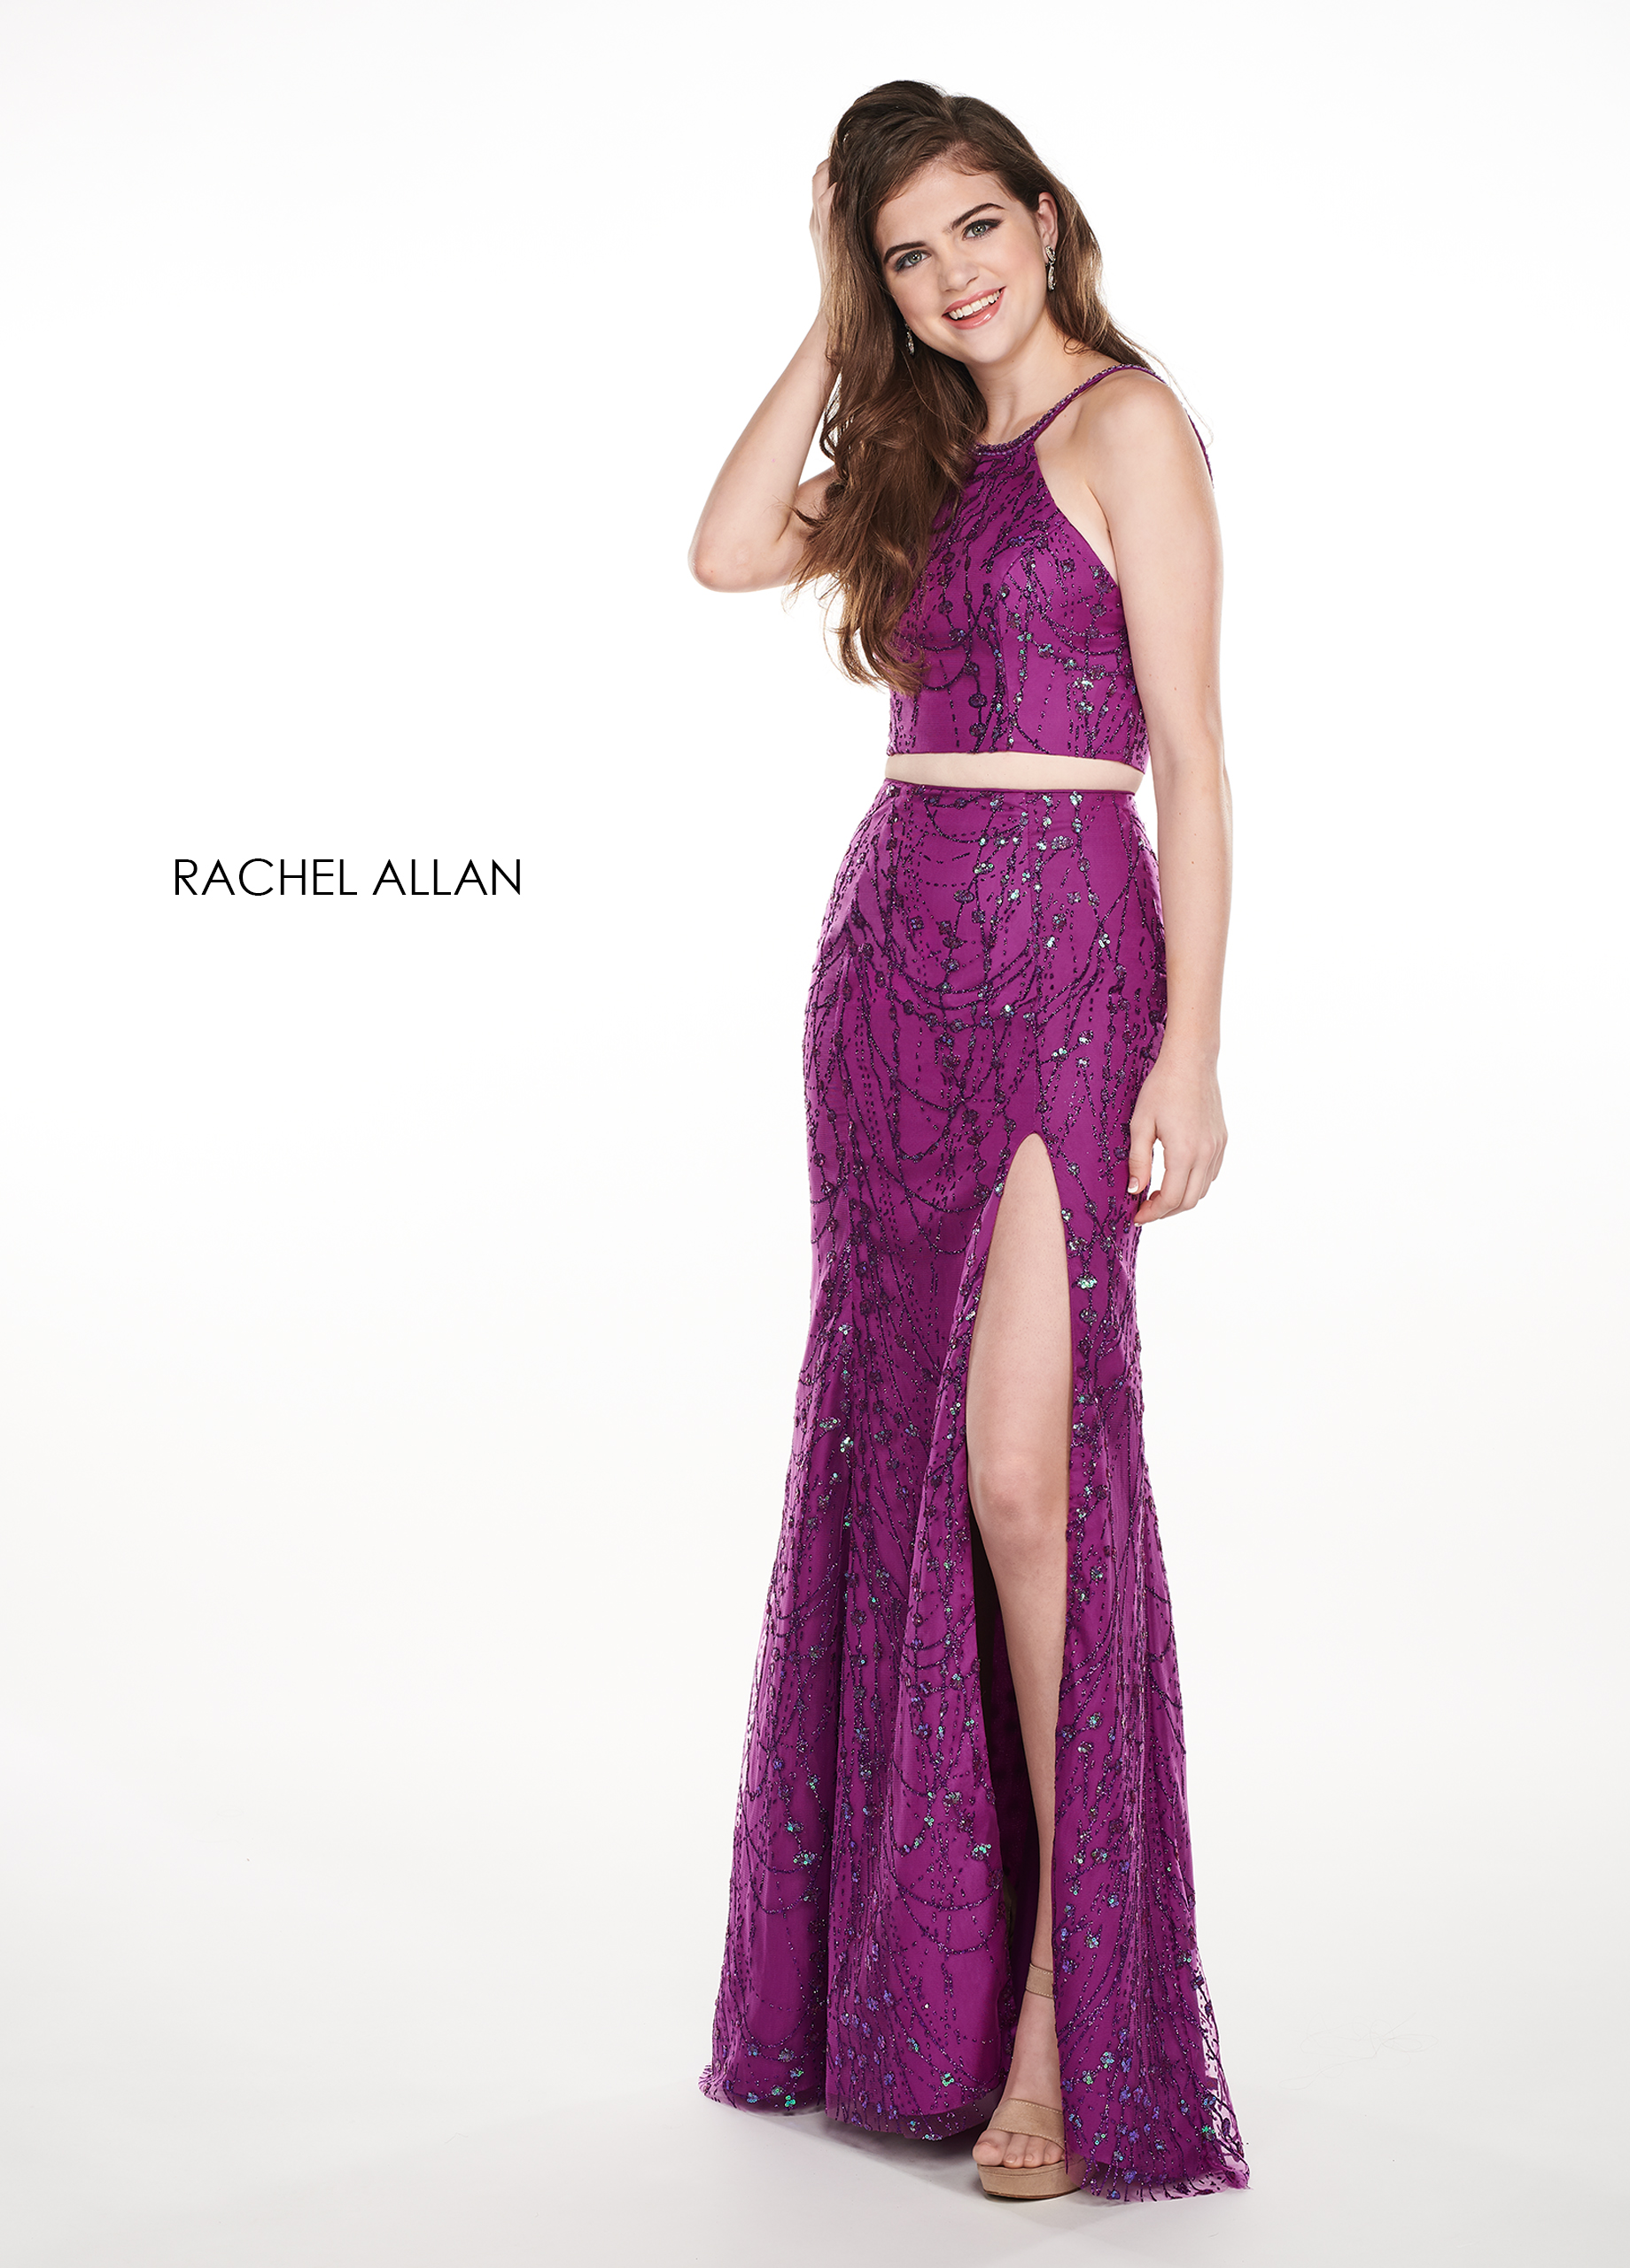 V-Neck A-Line Prom Dresses in Purple Color